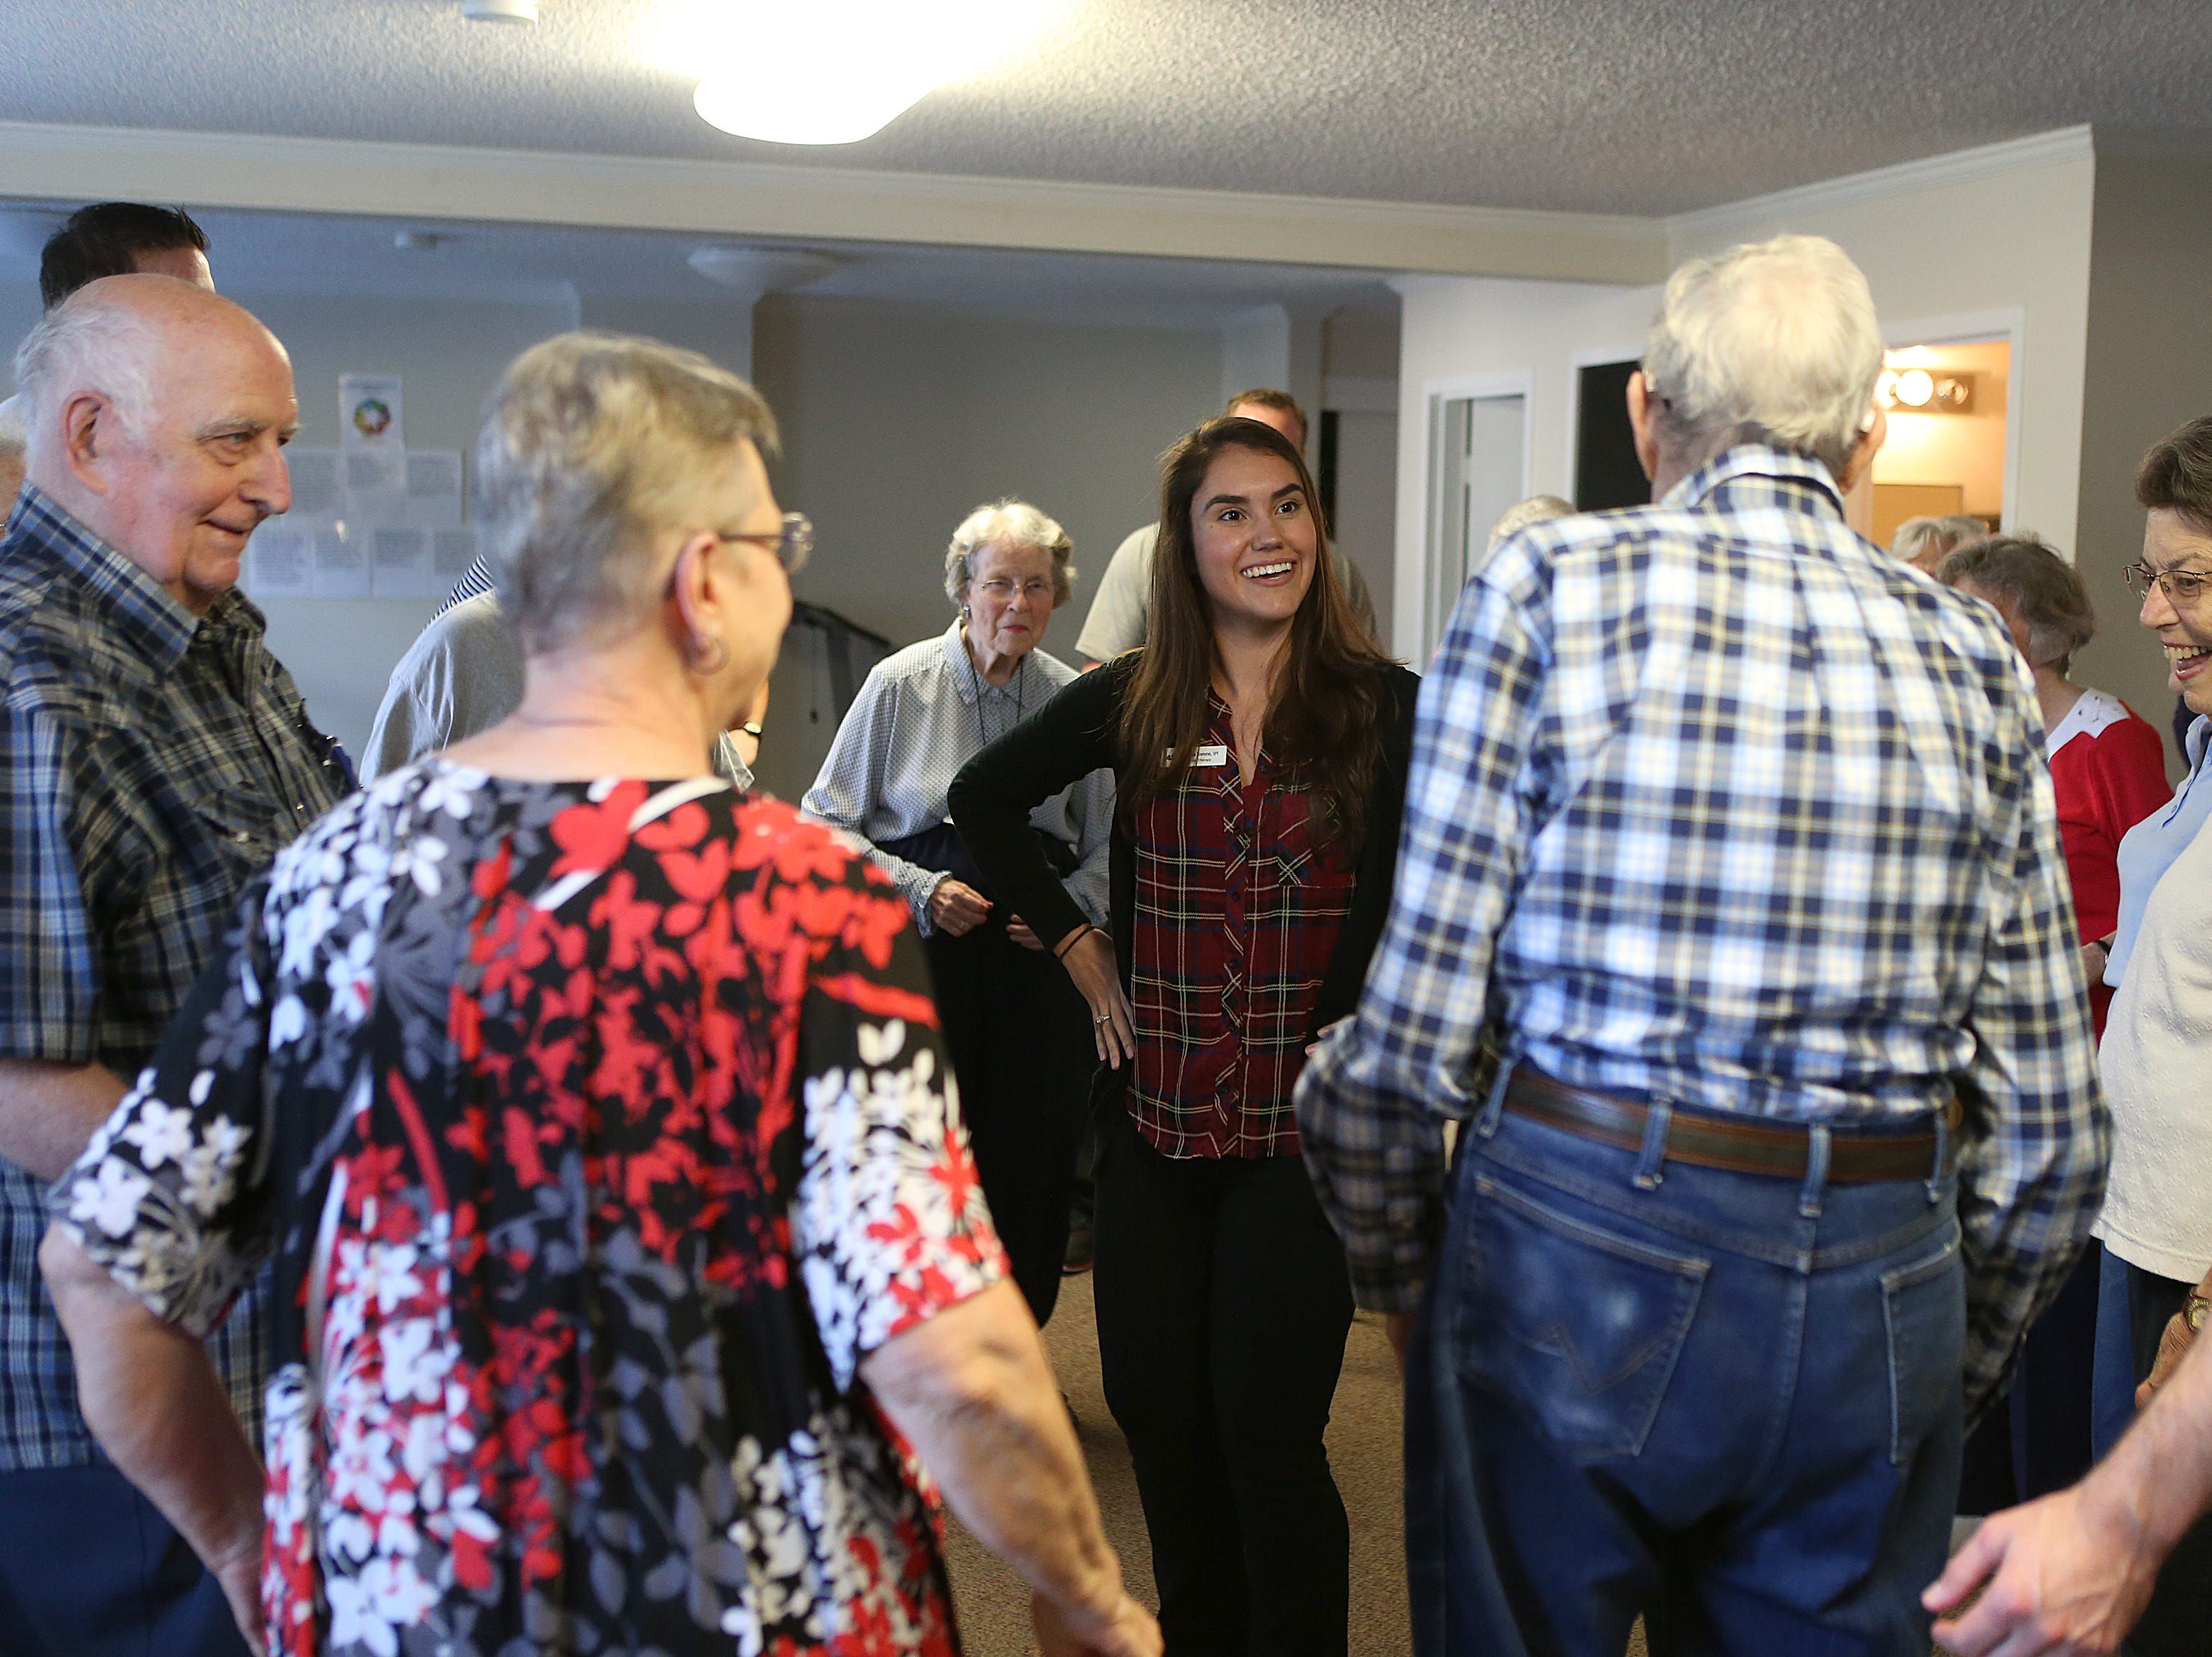 Natalia Traverzo, a physical therapy student at Angelo State University, dances with residents during a Balance and Fall Risk Reduction Program for seniors at Baptist Retirement Community Monday, Oct. 1, 2018.